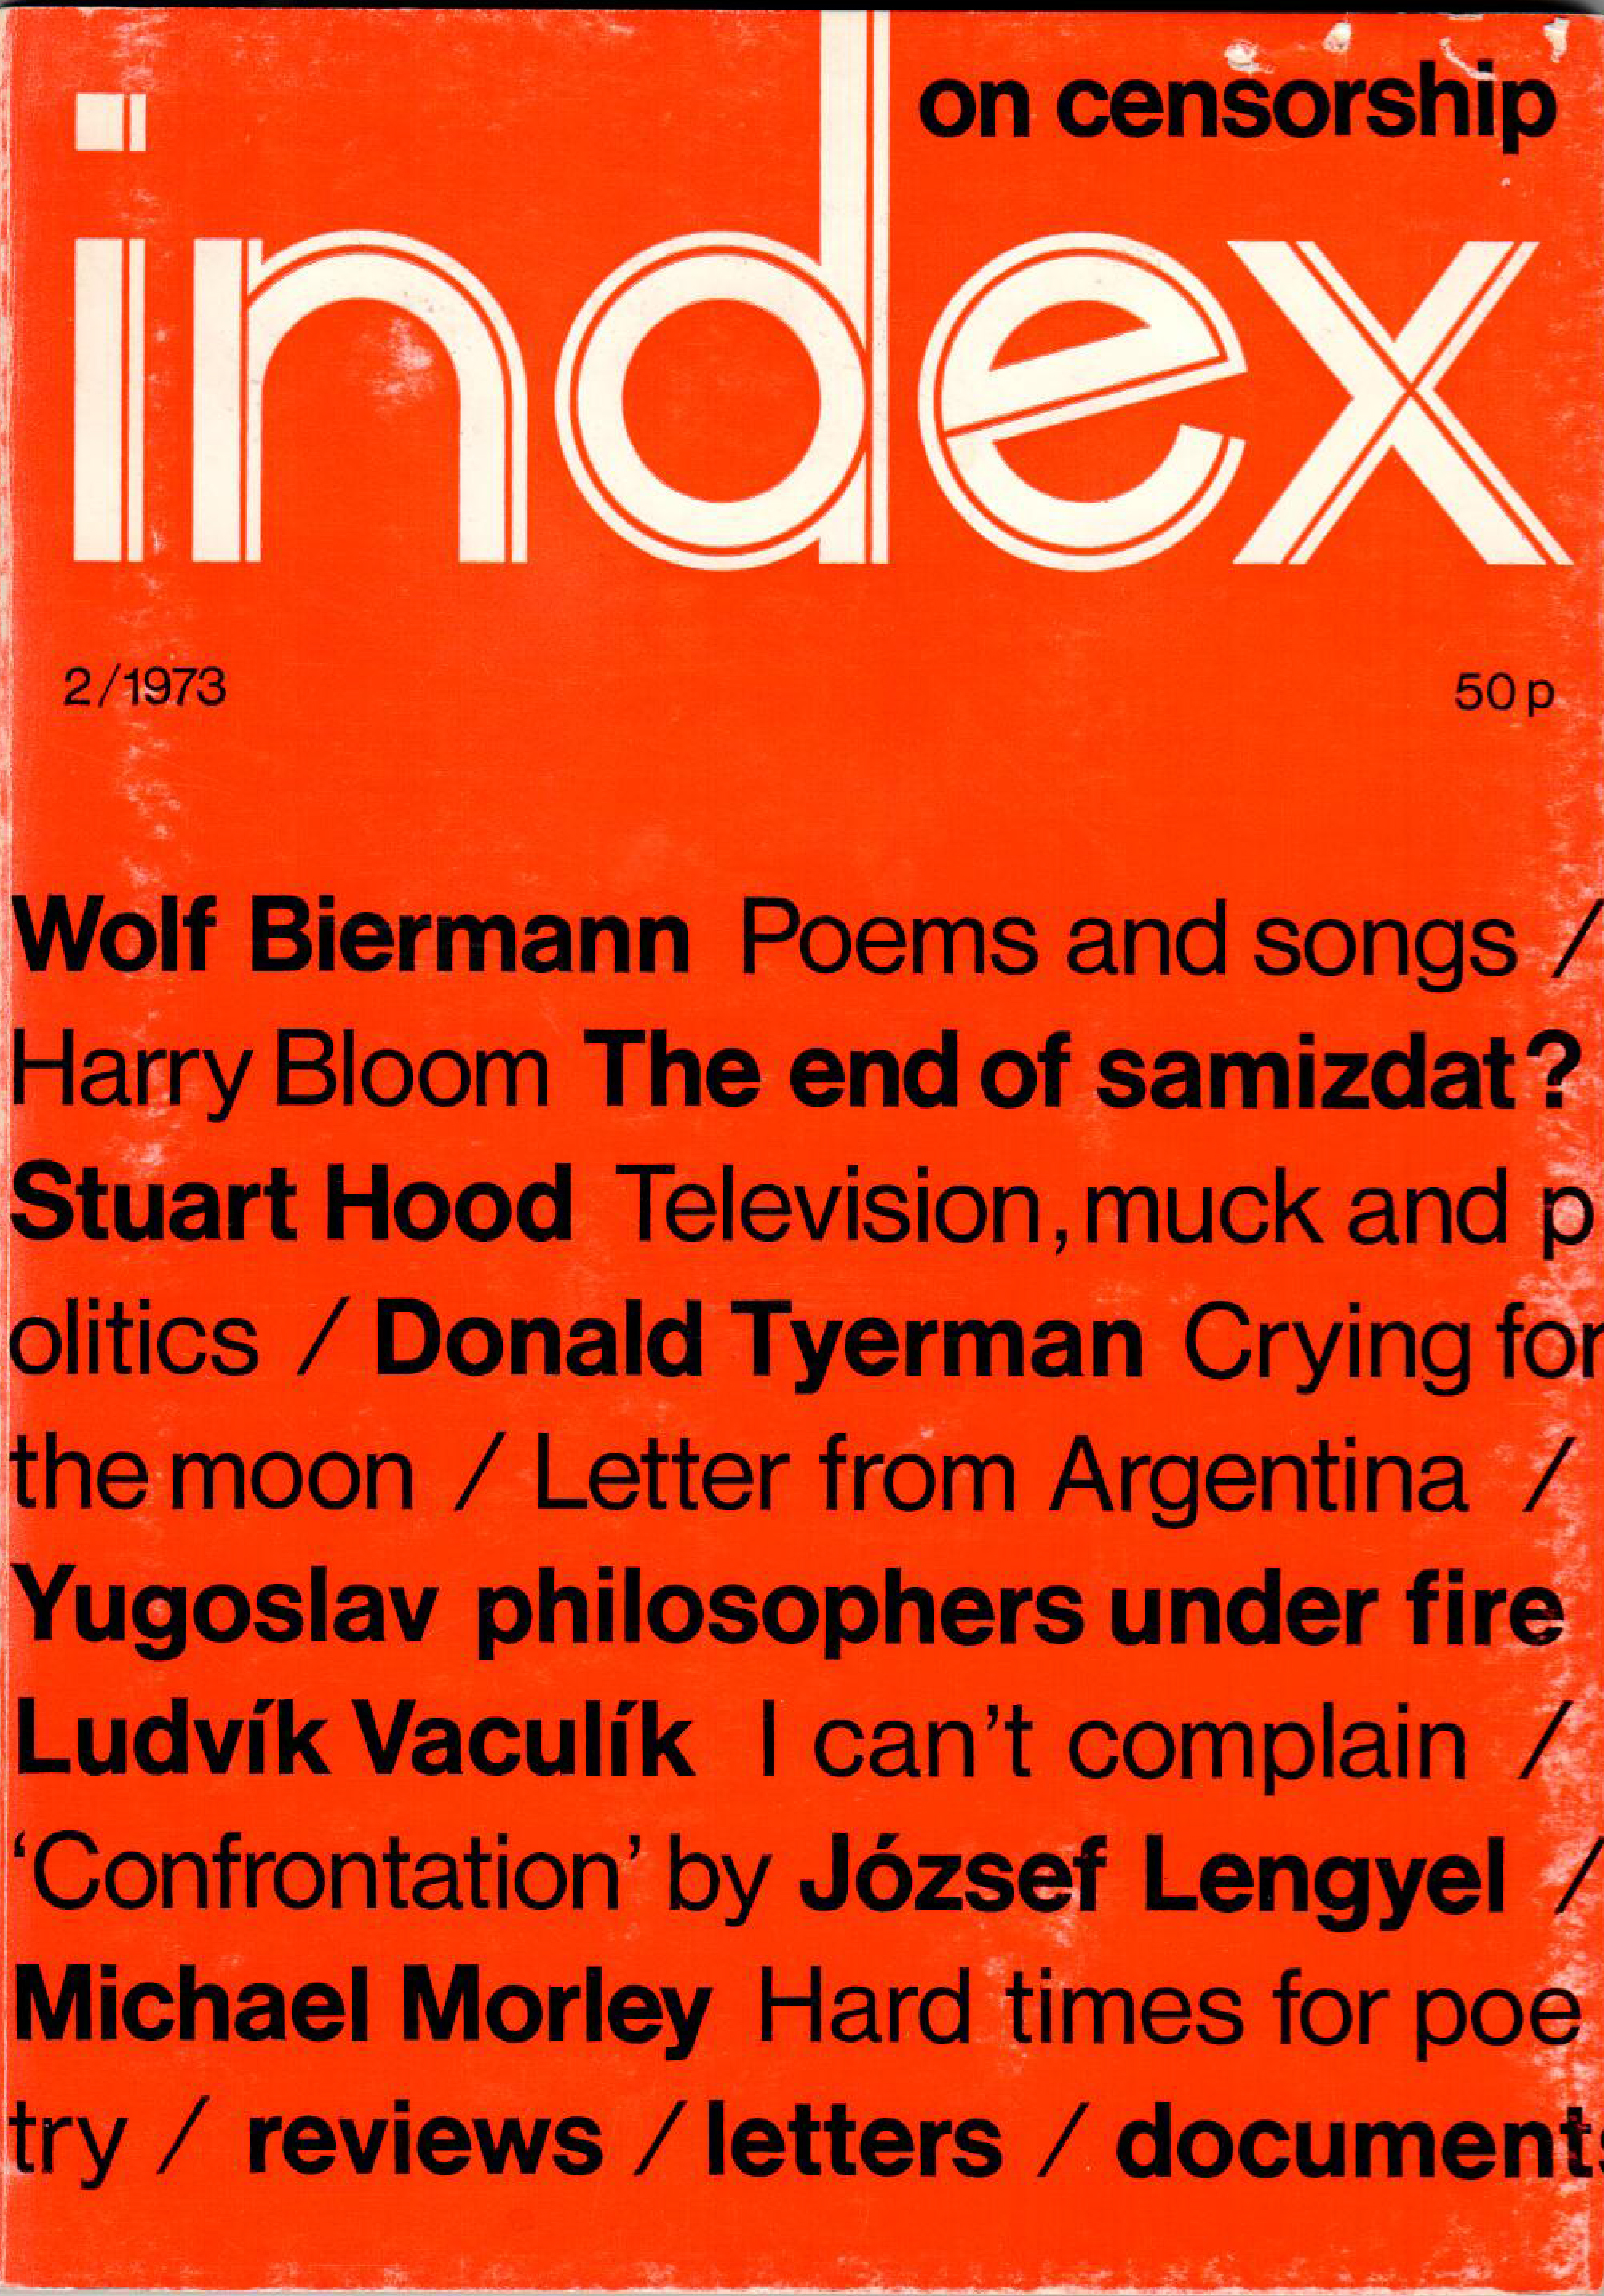 The end of samizdat?, the Summer 1973 issue of Index on Censorship magazine